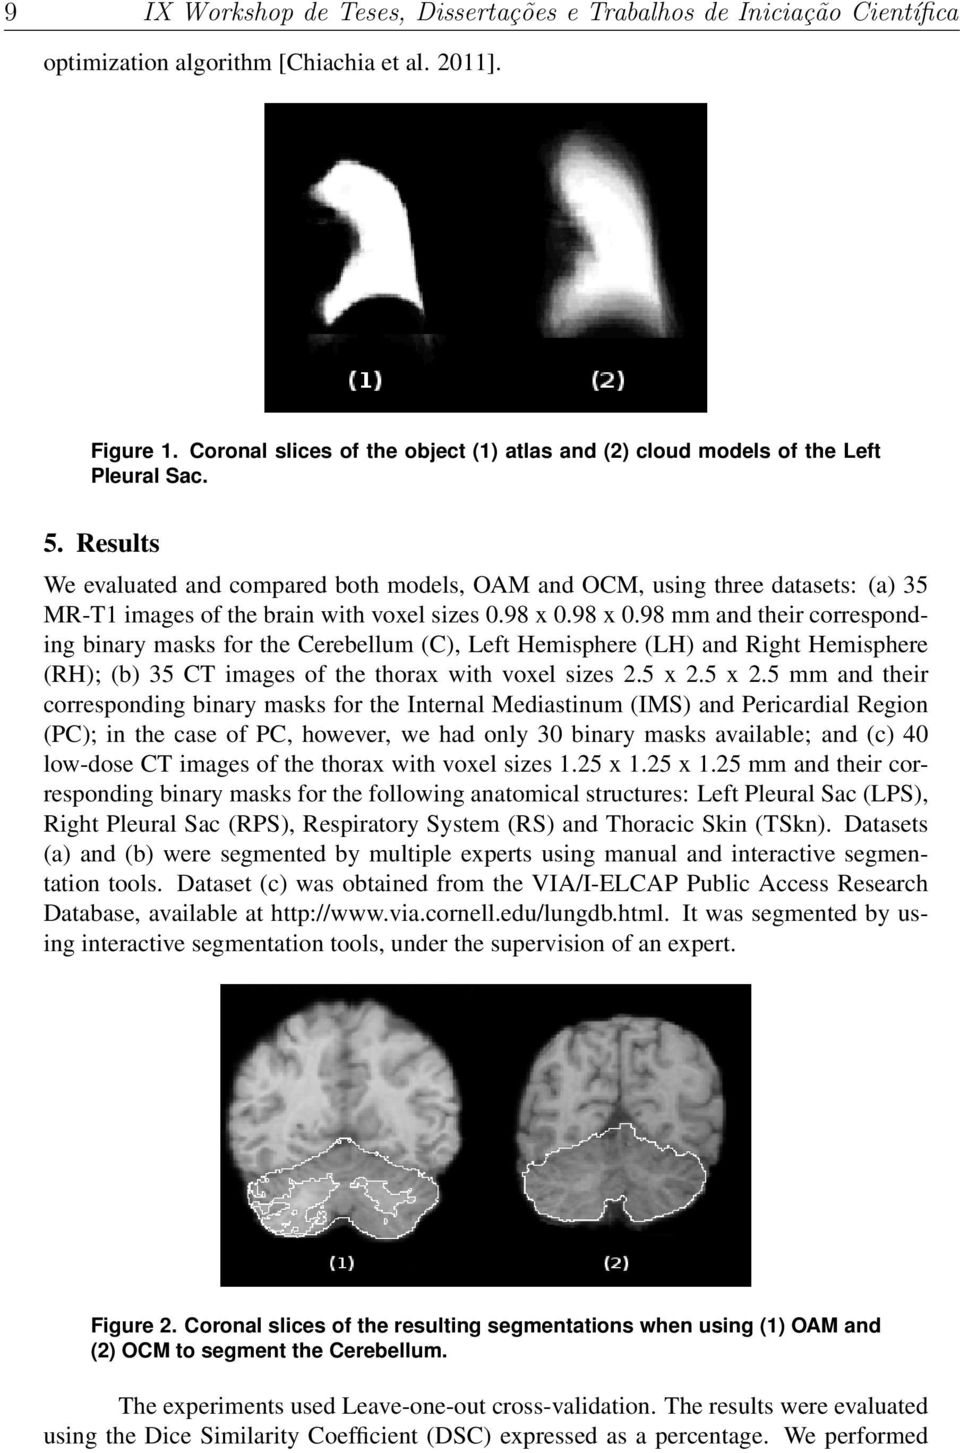 Results We evaluated and compared both models, OAM and OCM, using three datasets: (a) 35 MR-T1 images of the brain with voxel sizes 0.98 x 0.